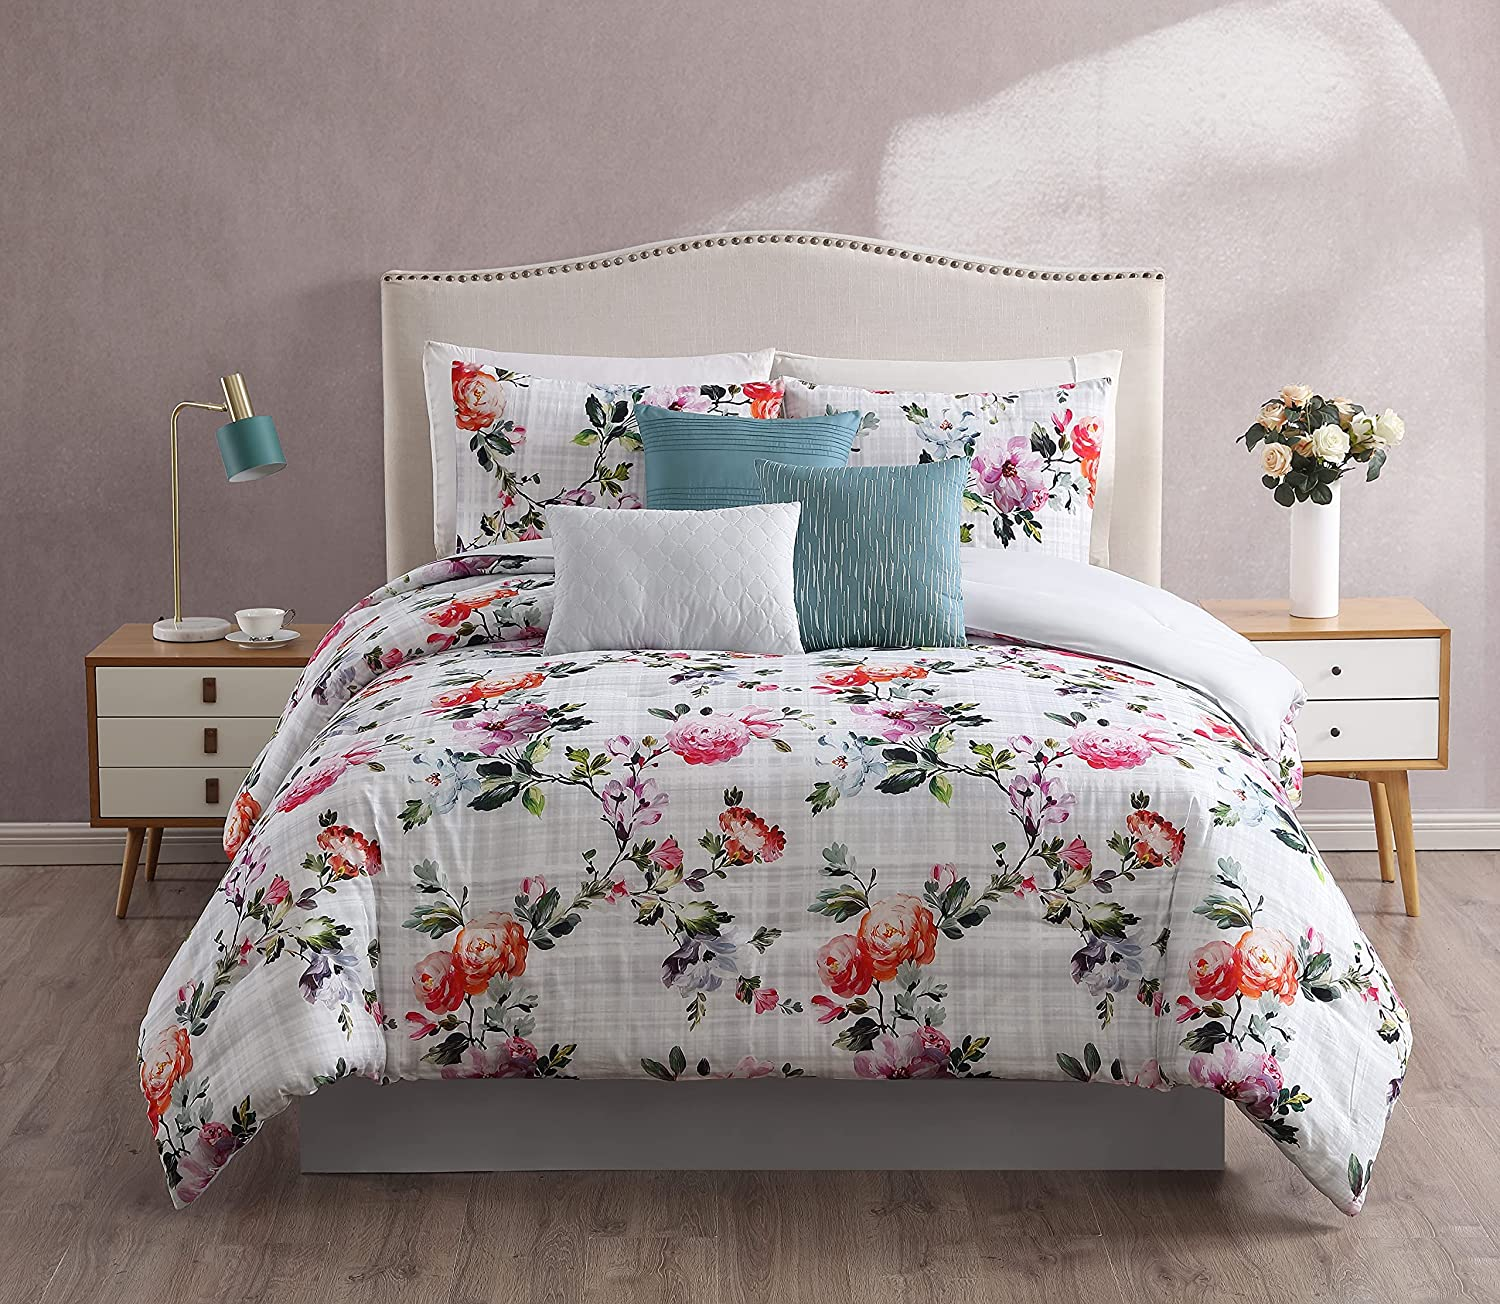 Riverbrook Home Elite Collection Comforter Queen Katina Tampa Mall Purchase - Set